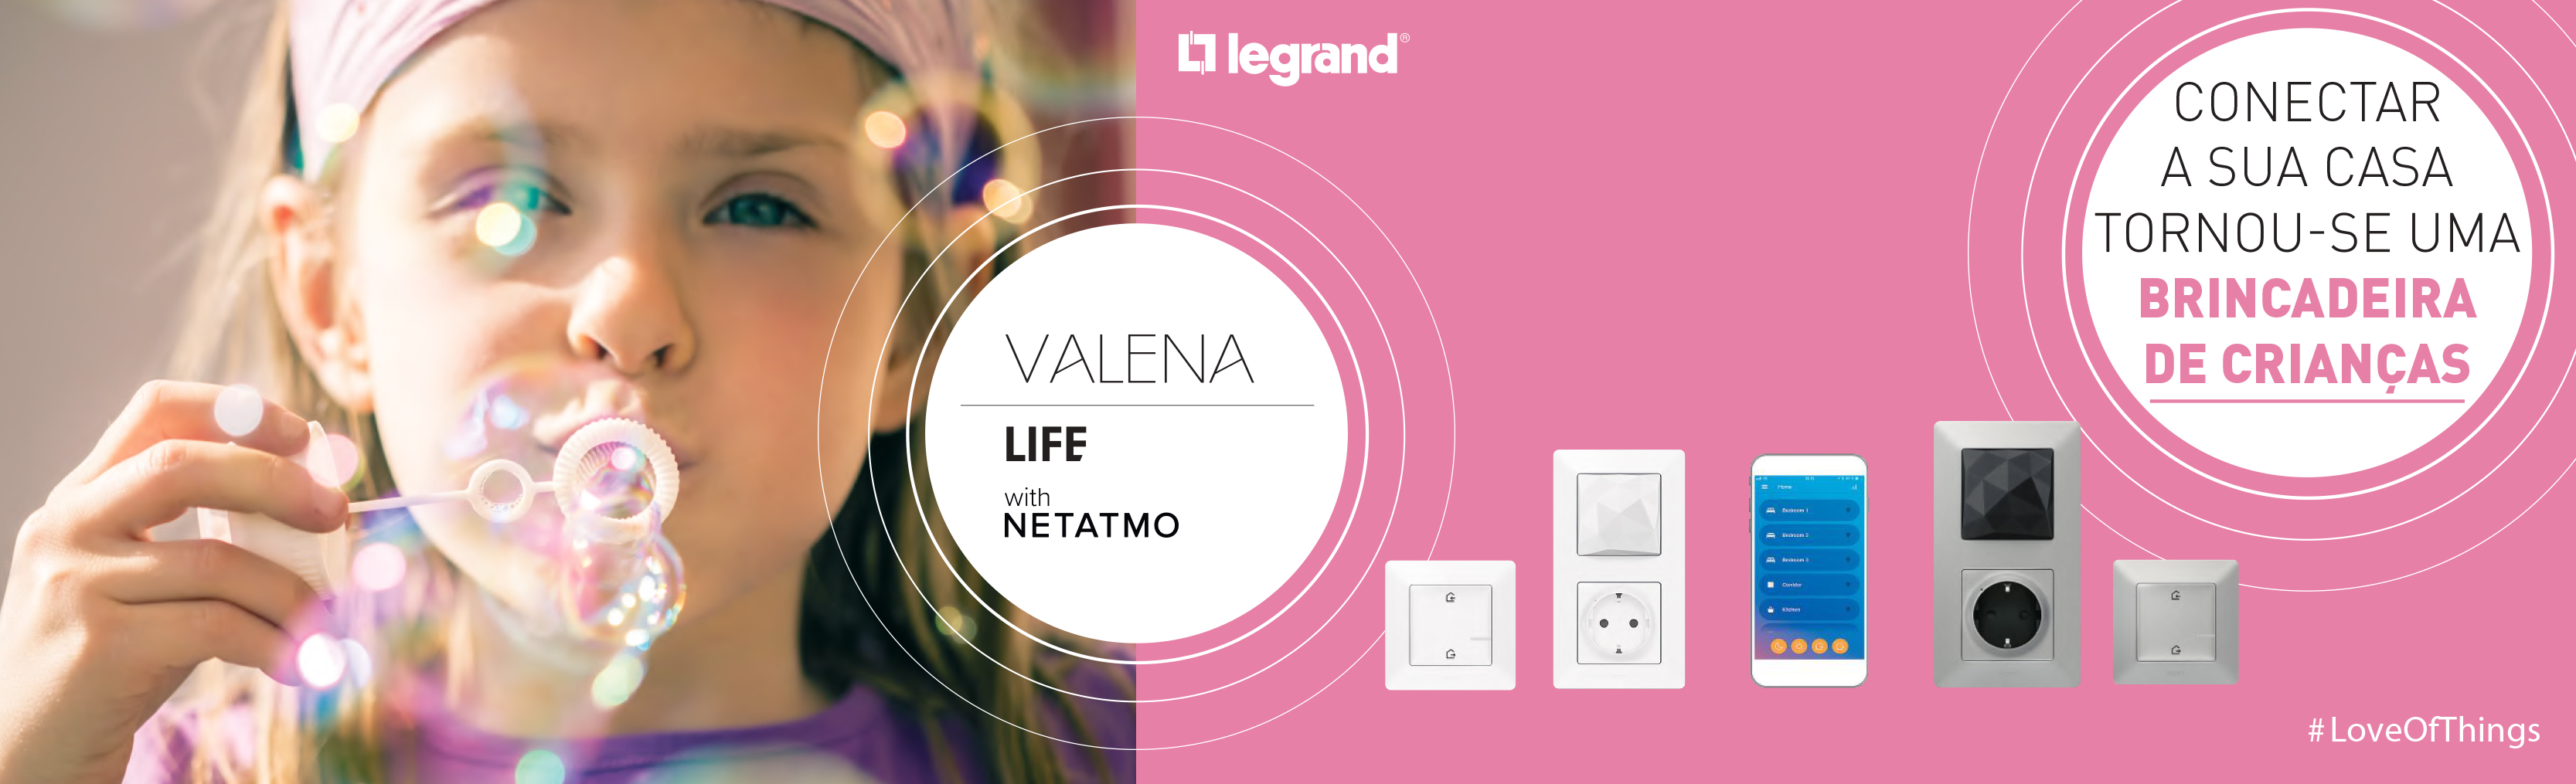 Valena Life with Netatmo